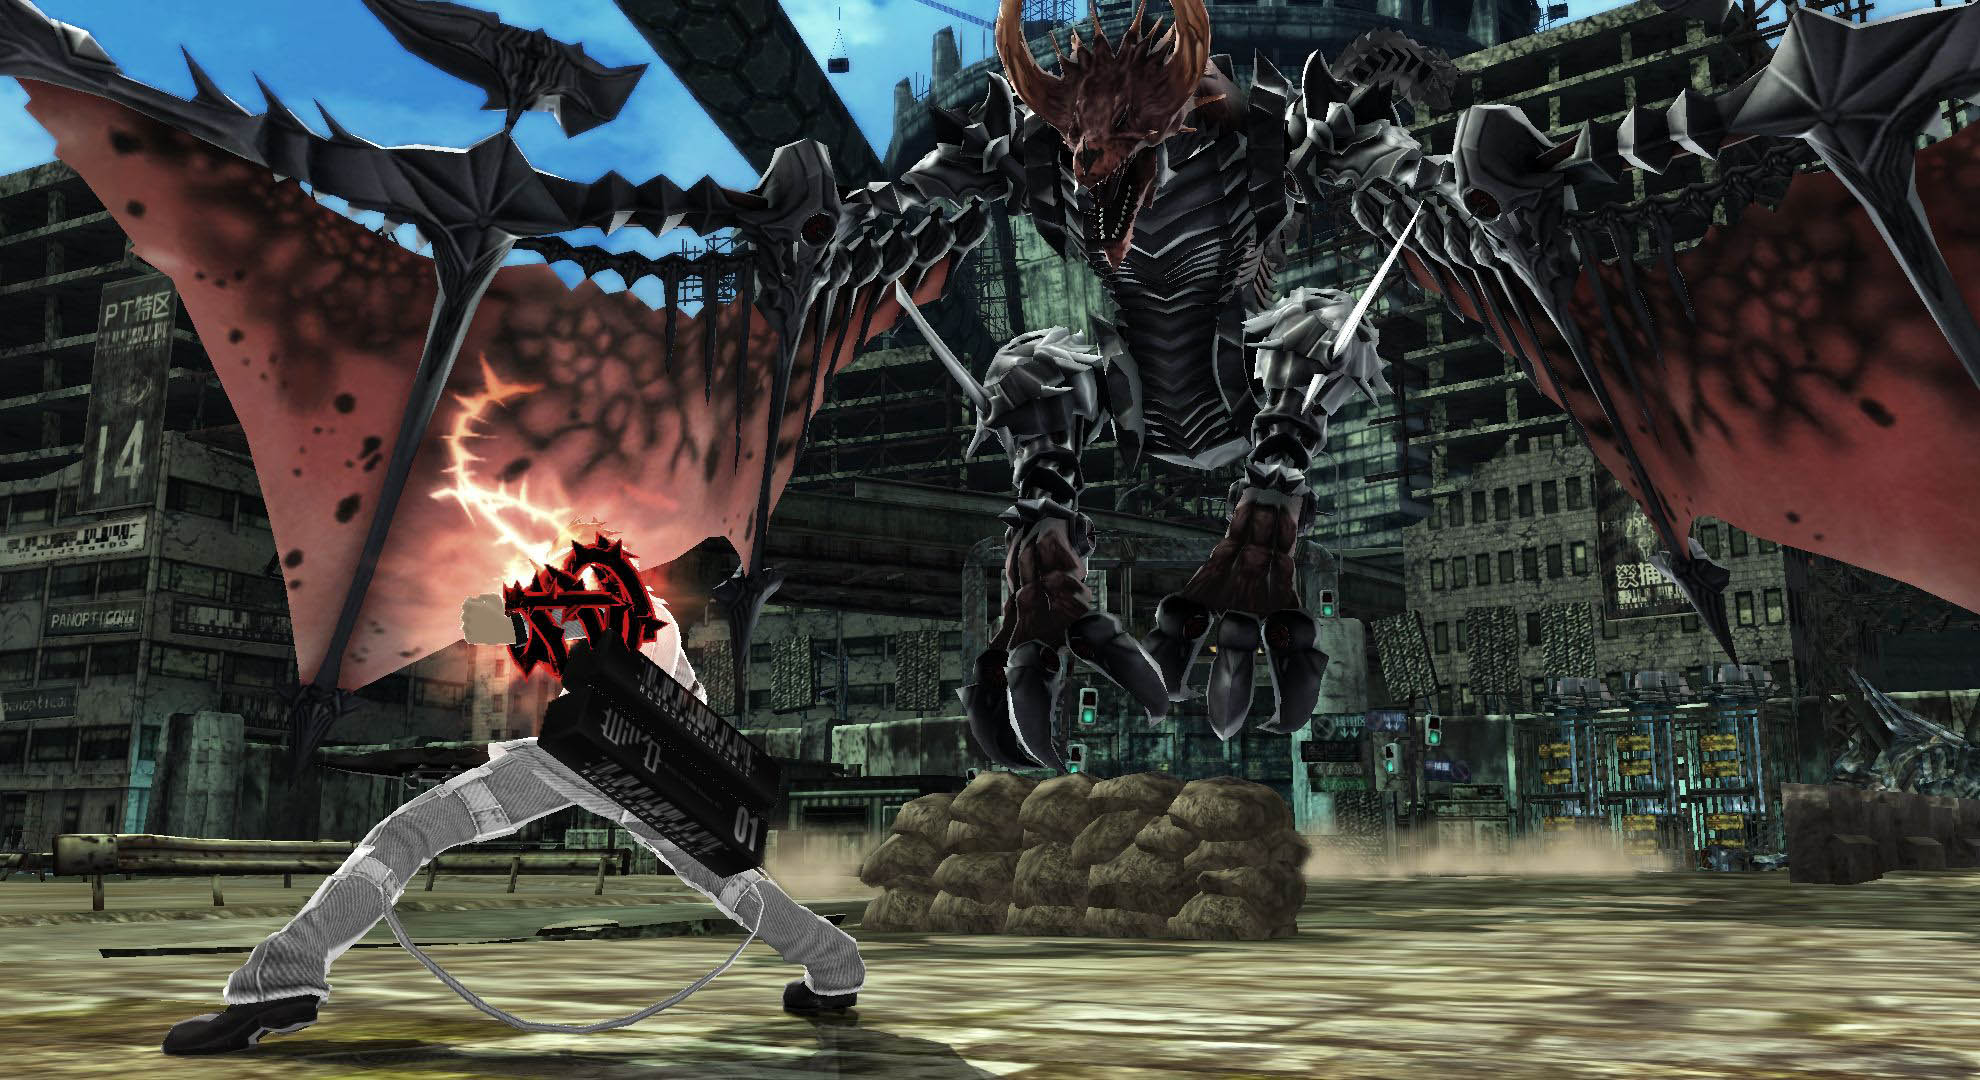 Freedom Wars First PS Vita Screens Show Characters Battles Amp More VG247